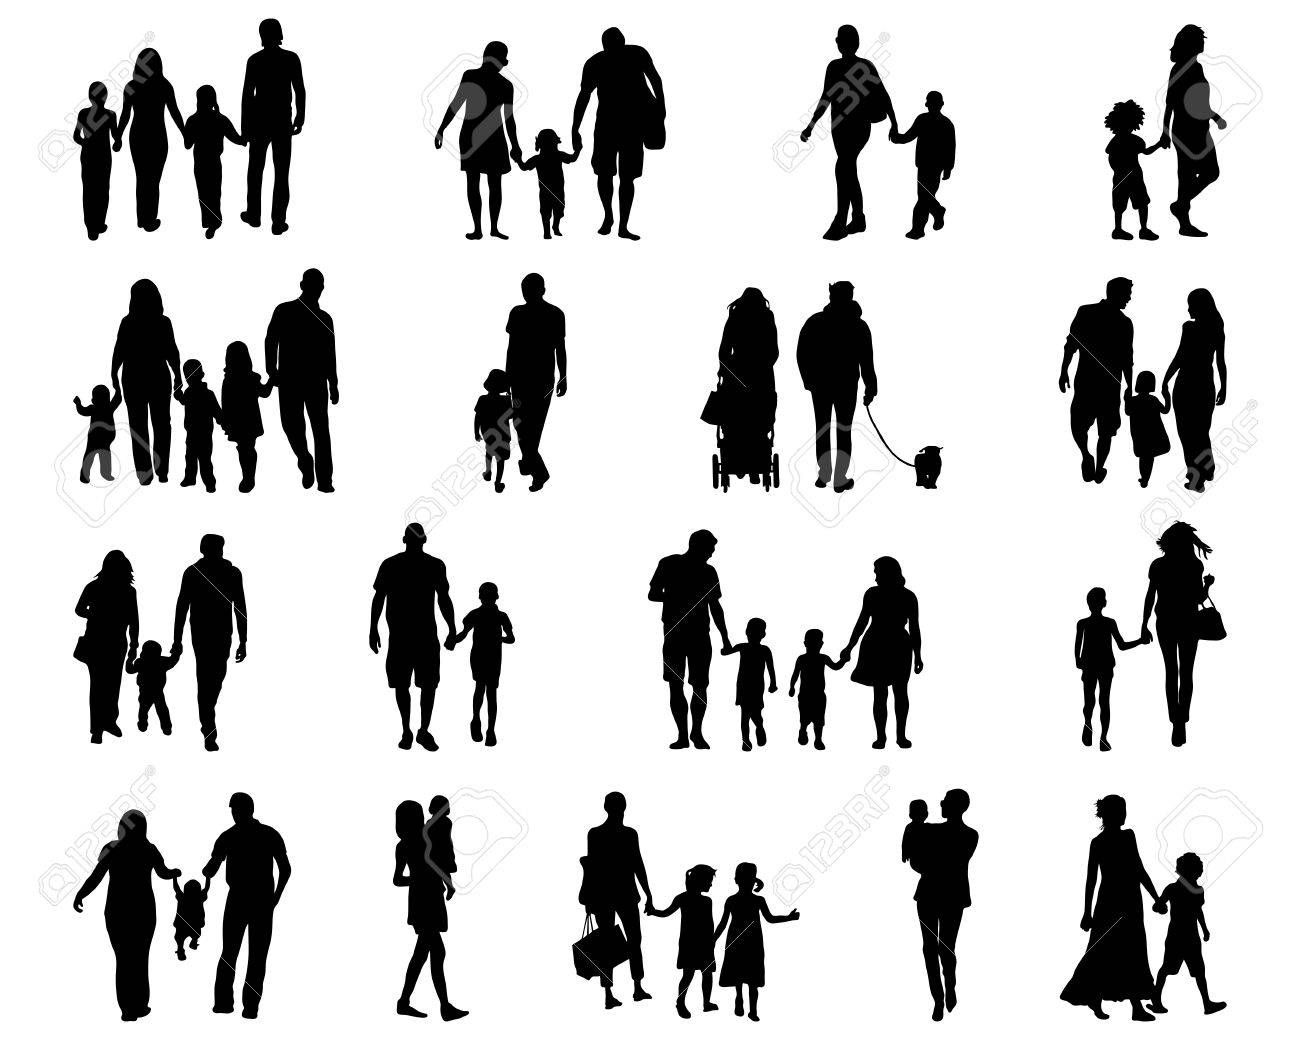 black silhouettes of families in walk vector royalty free cliparts vectors and stock illustration image 44690348 black silhouettes of families in walk vector